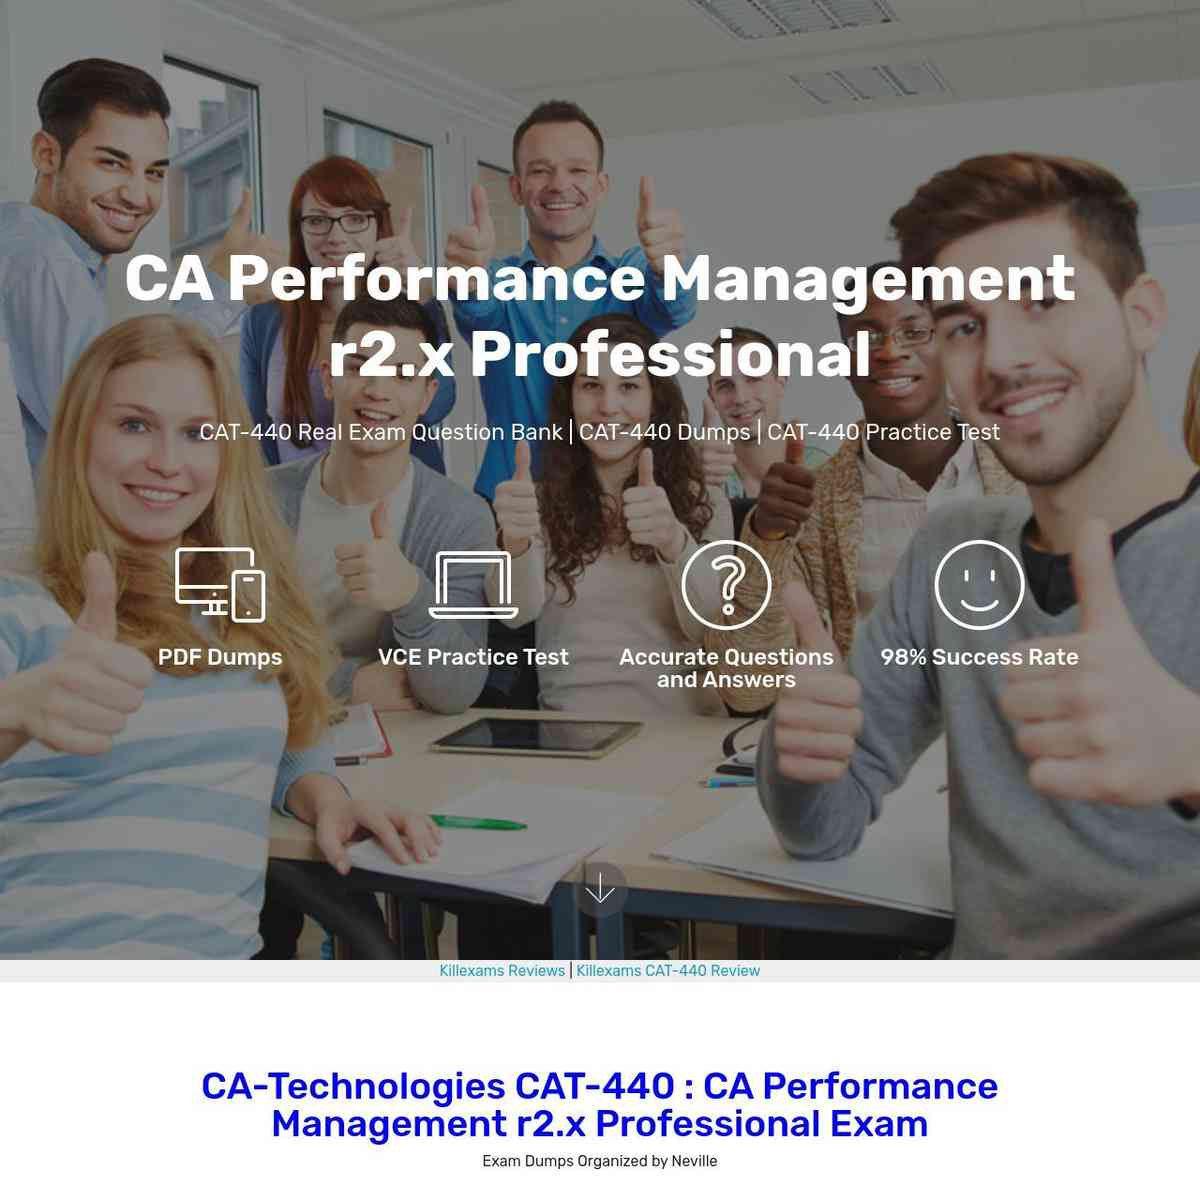 Get ready to download CAT-440 Latest Topics and pass exam